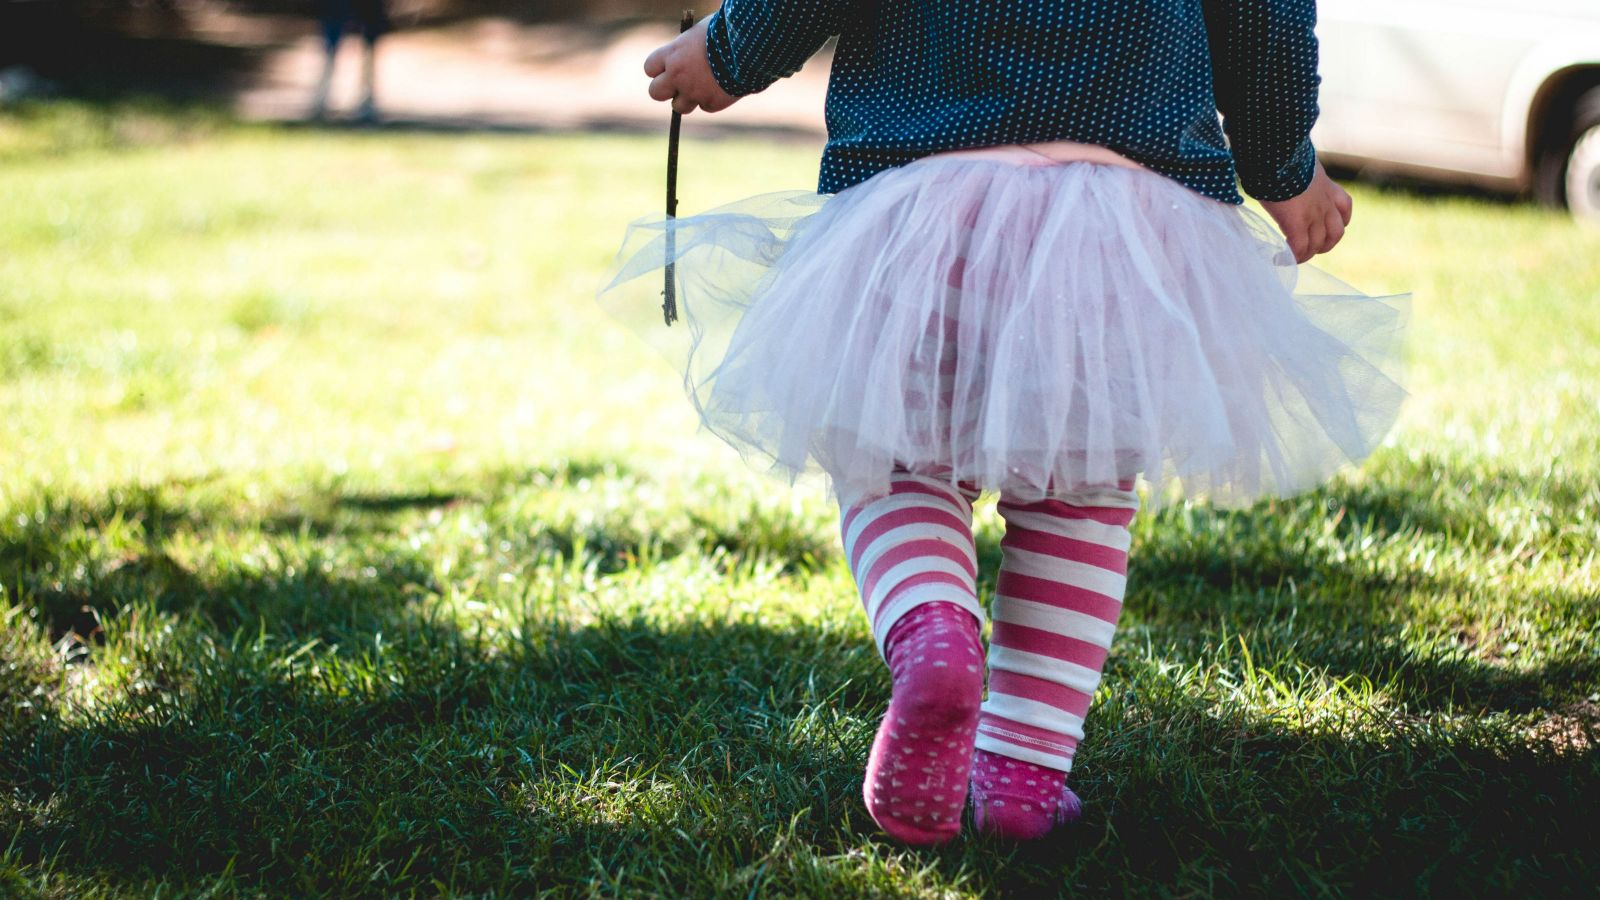 A little girl in a fairy dress and pink socks, walks across grass without shoes holding a small stick.